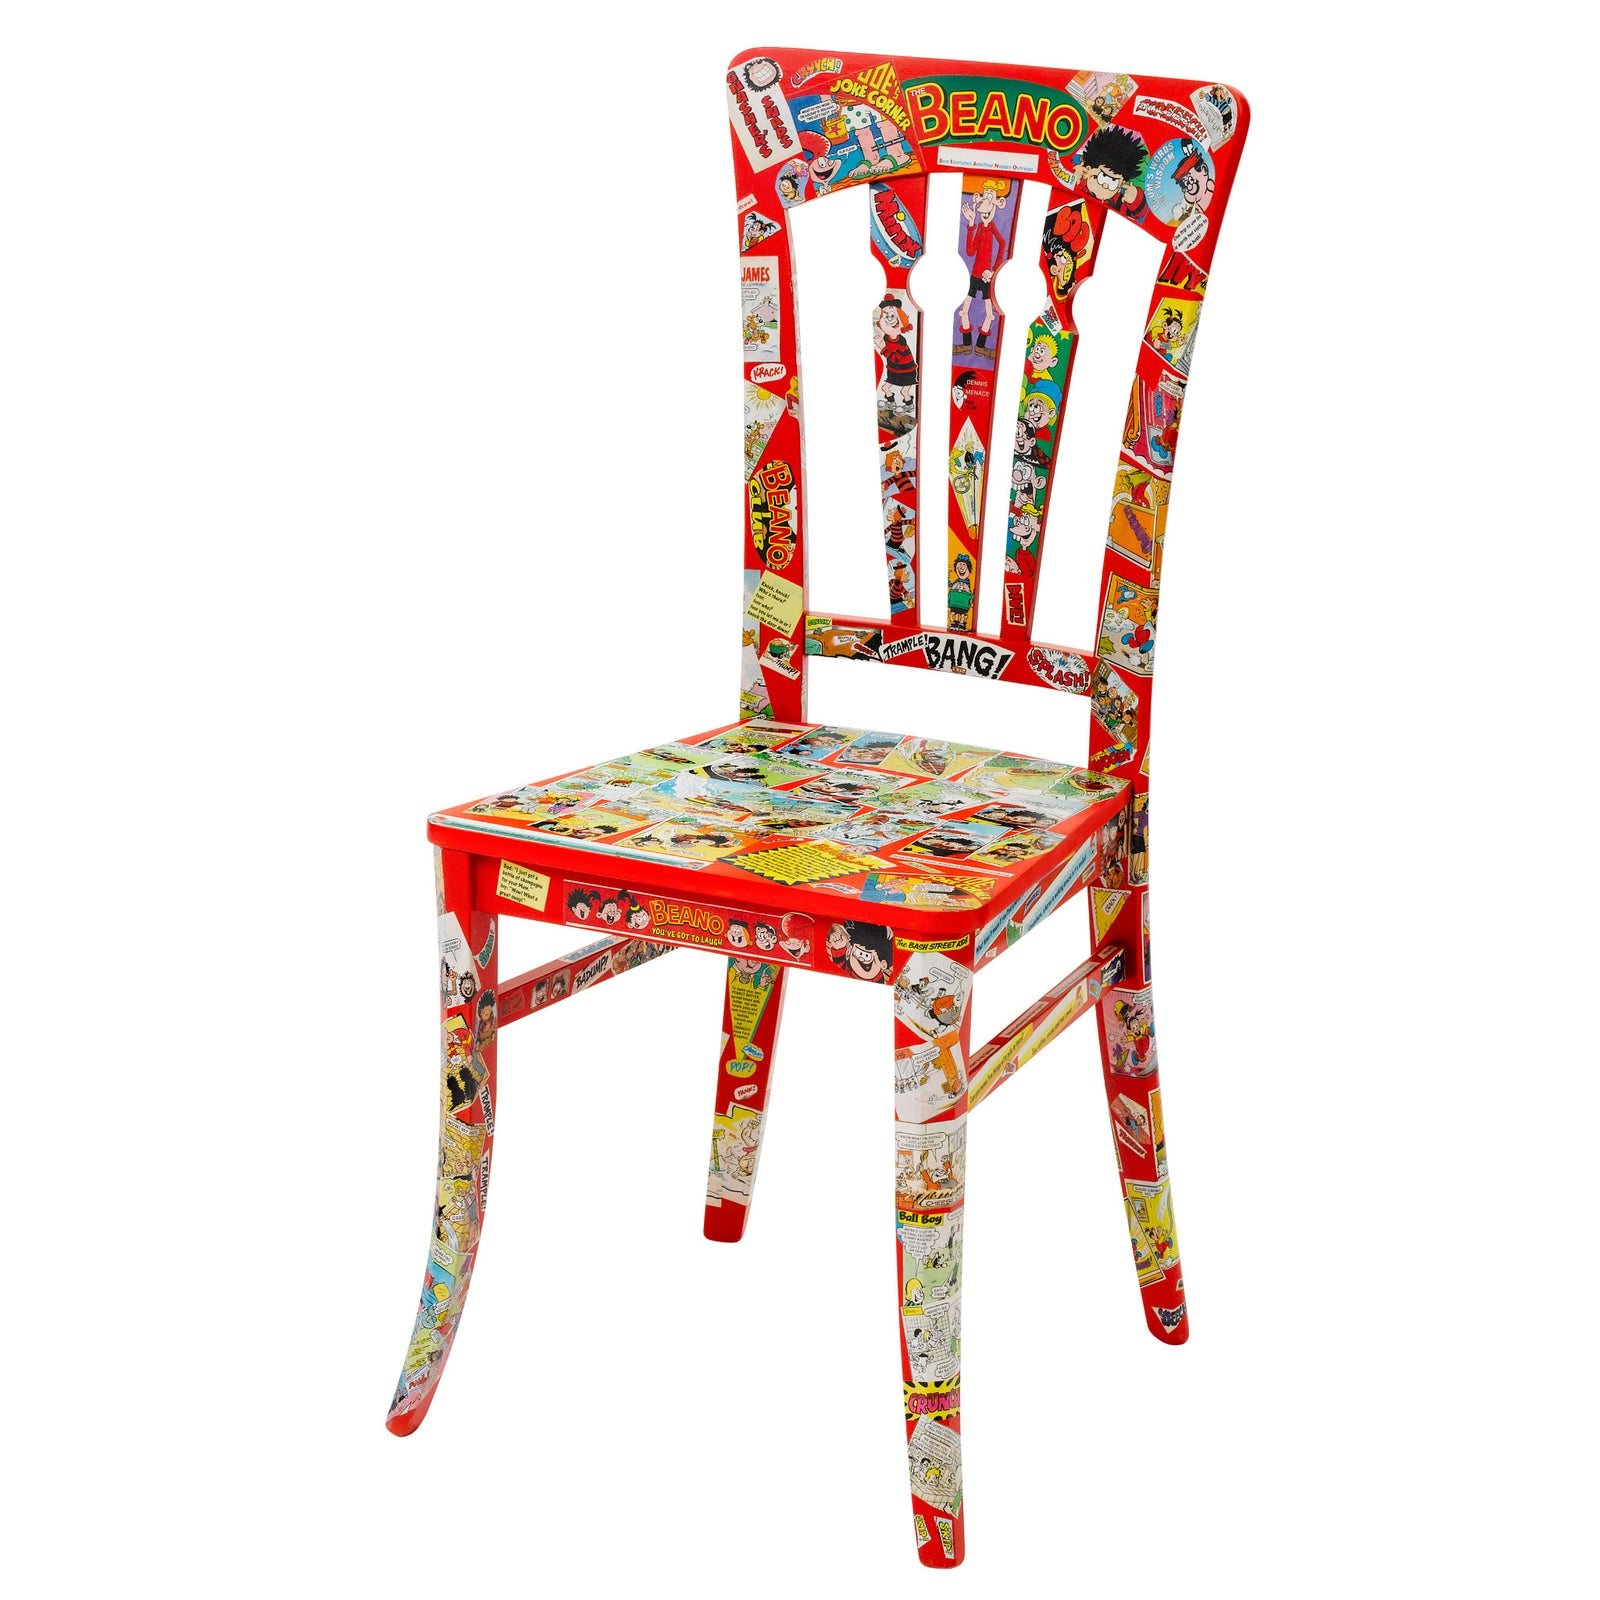 A Pop art chair finished in red overlaid with real Beano comic print